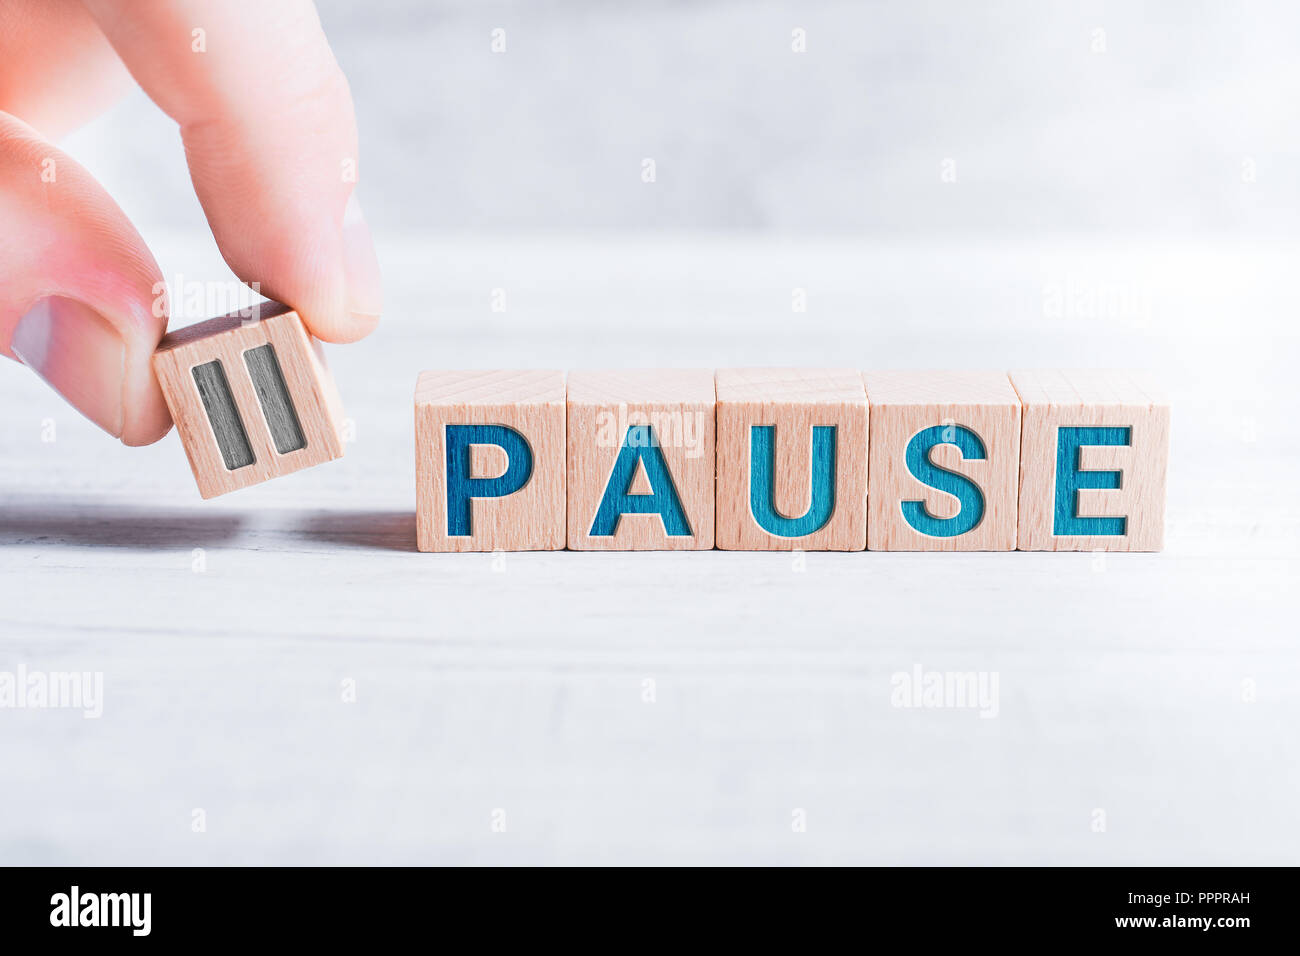 The Word Pause Formed By Wooden Blocks And Arranged By Male Fingers On A White Table - Stock Image